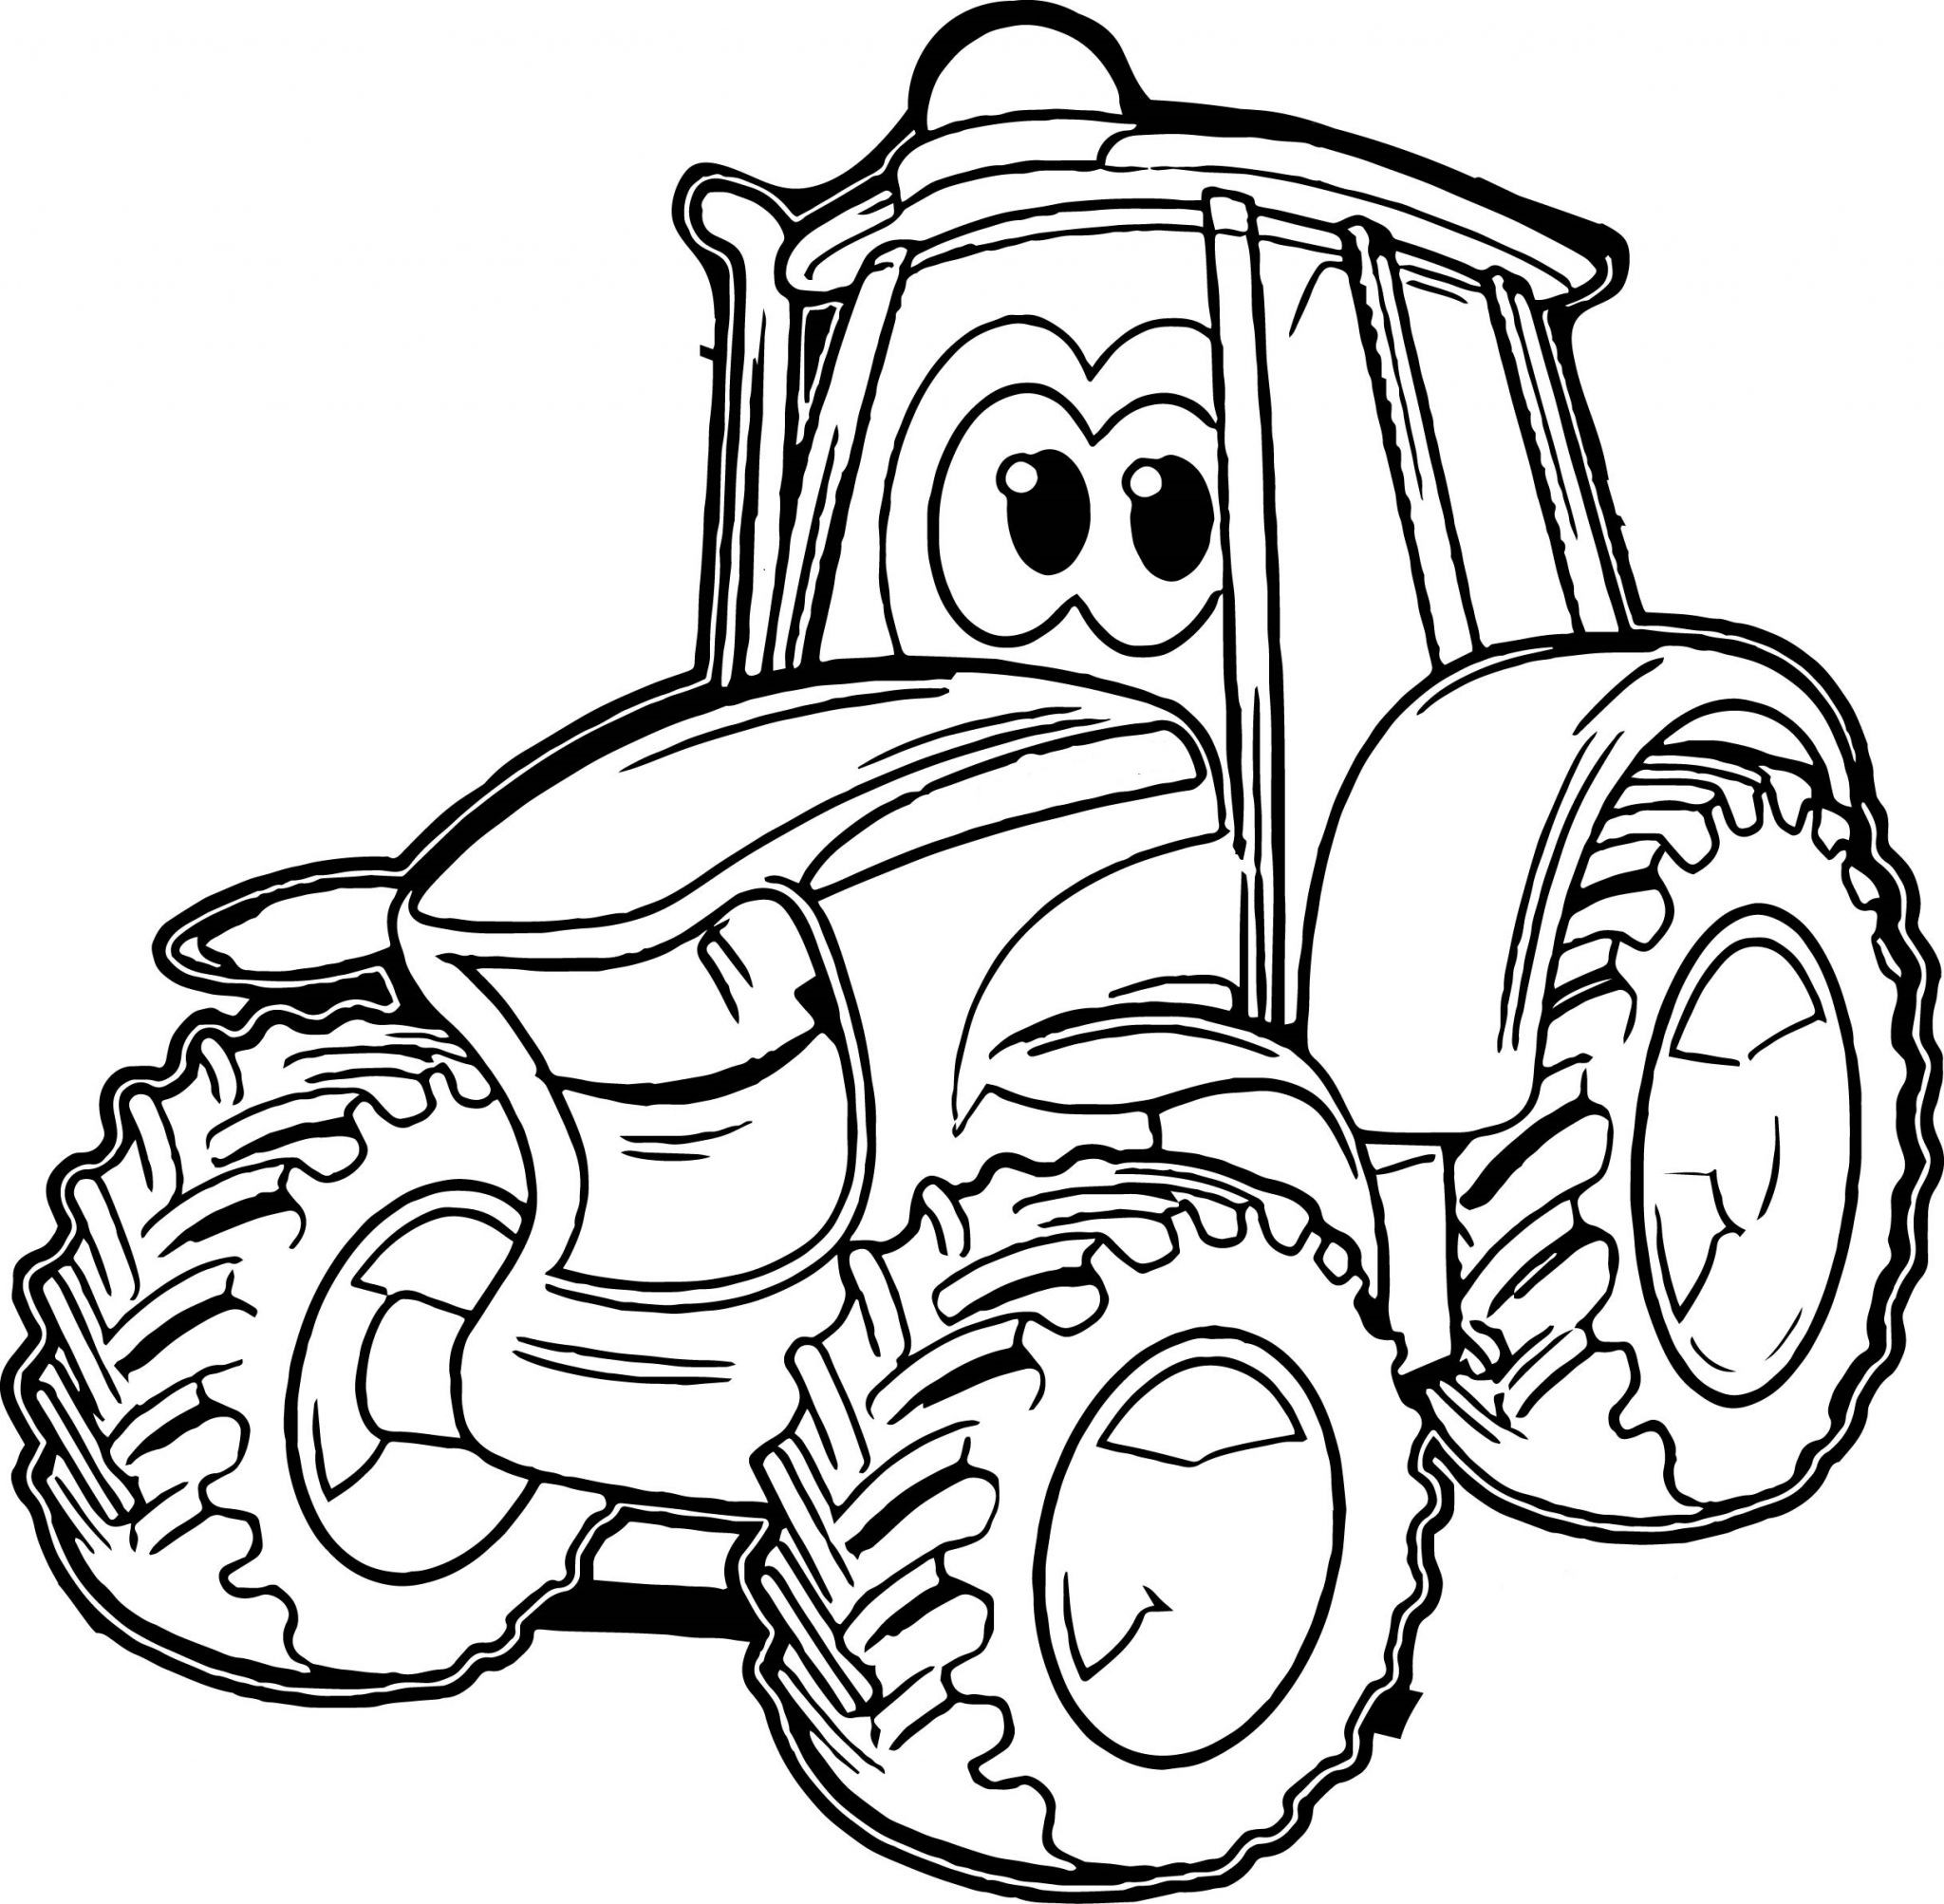 Best ideas about Printable Tractor Coloring Pages For Boys . Save or Pin 32 Kolorowanki Pojazdów Pokoloruj Świat Now.